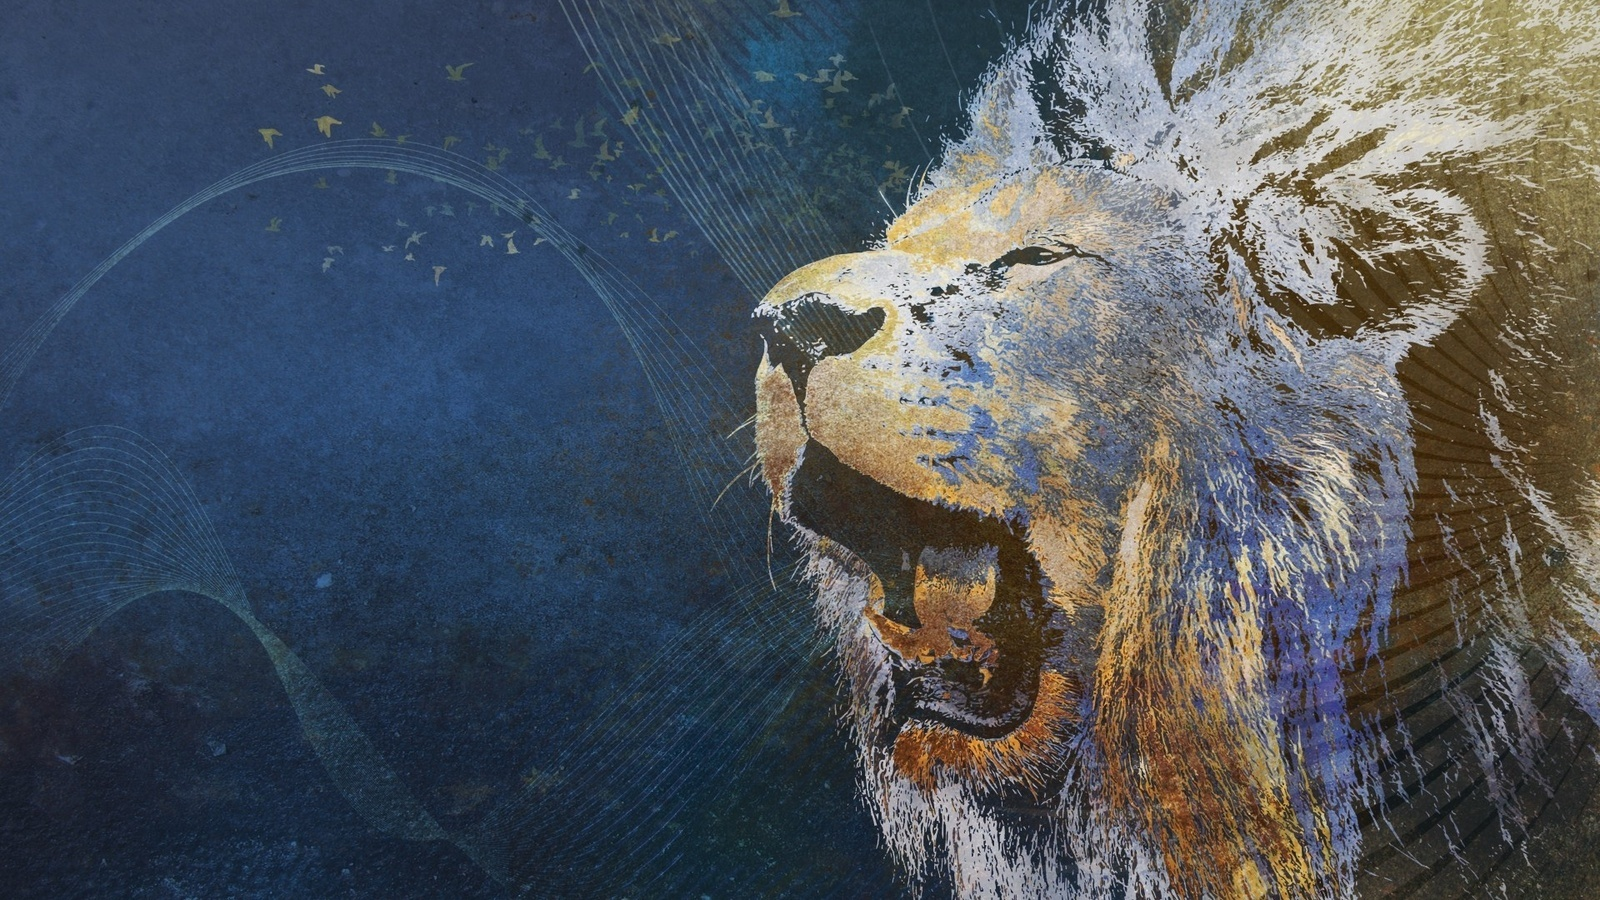 16704 download wallpaper Animals, Background, Lions, Pictures screensavers and pictures for free